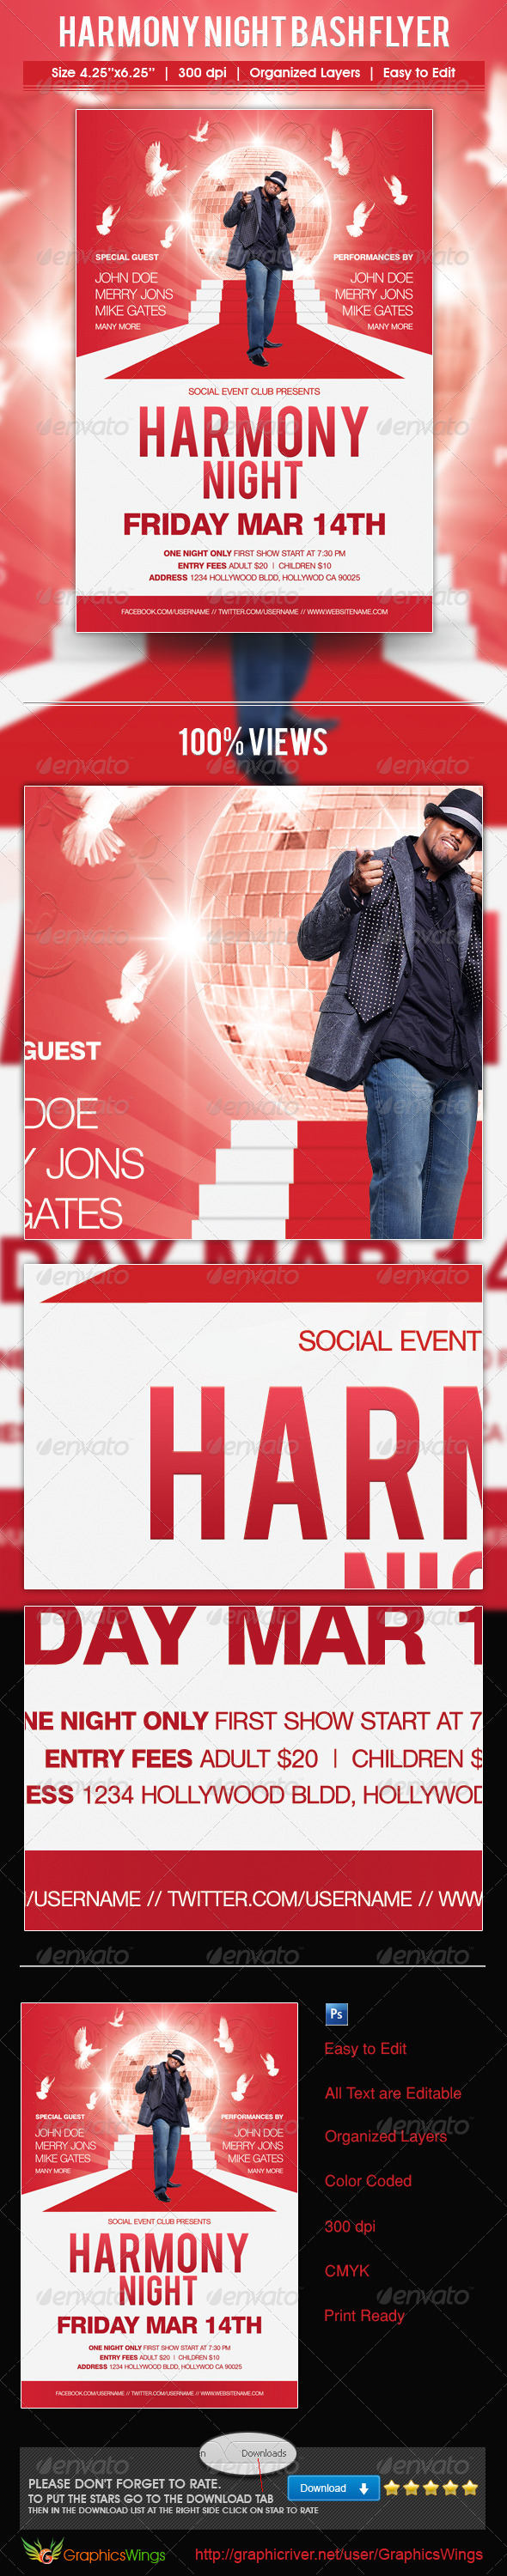 GraphicRiver Harmony Night Bash Flyer Template 4590588